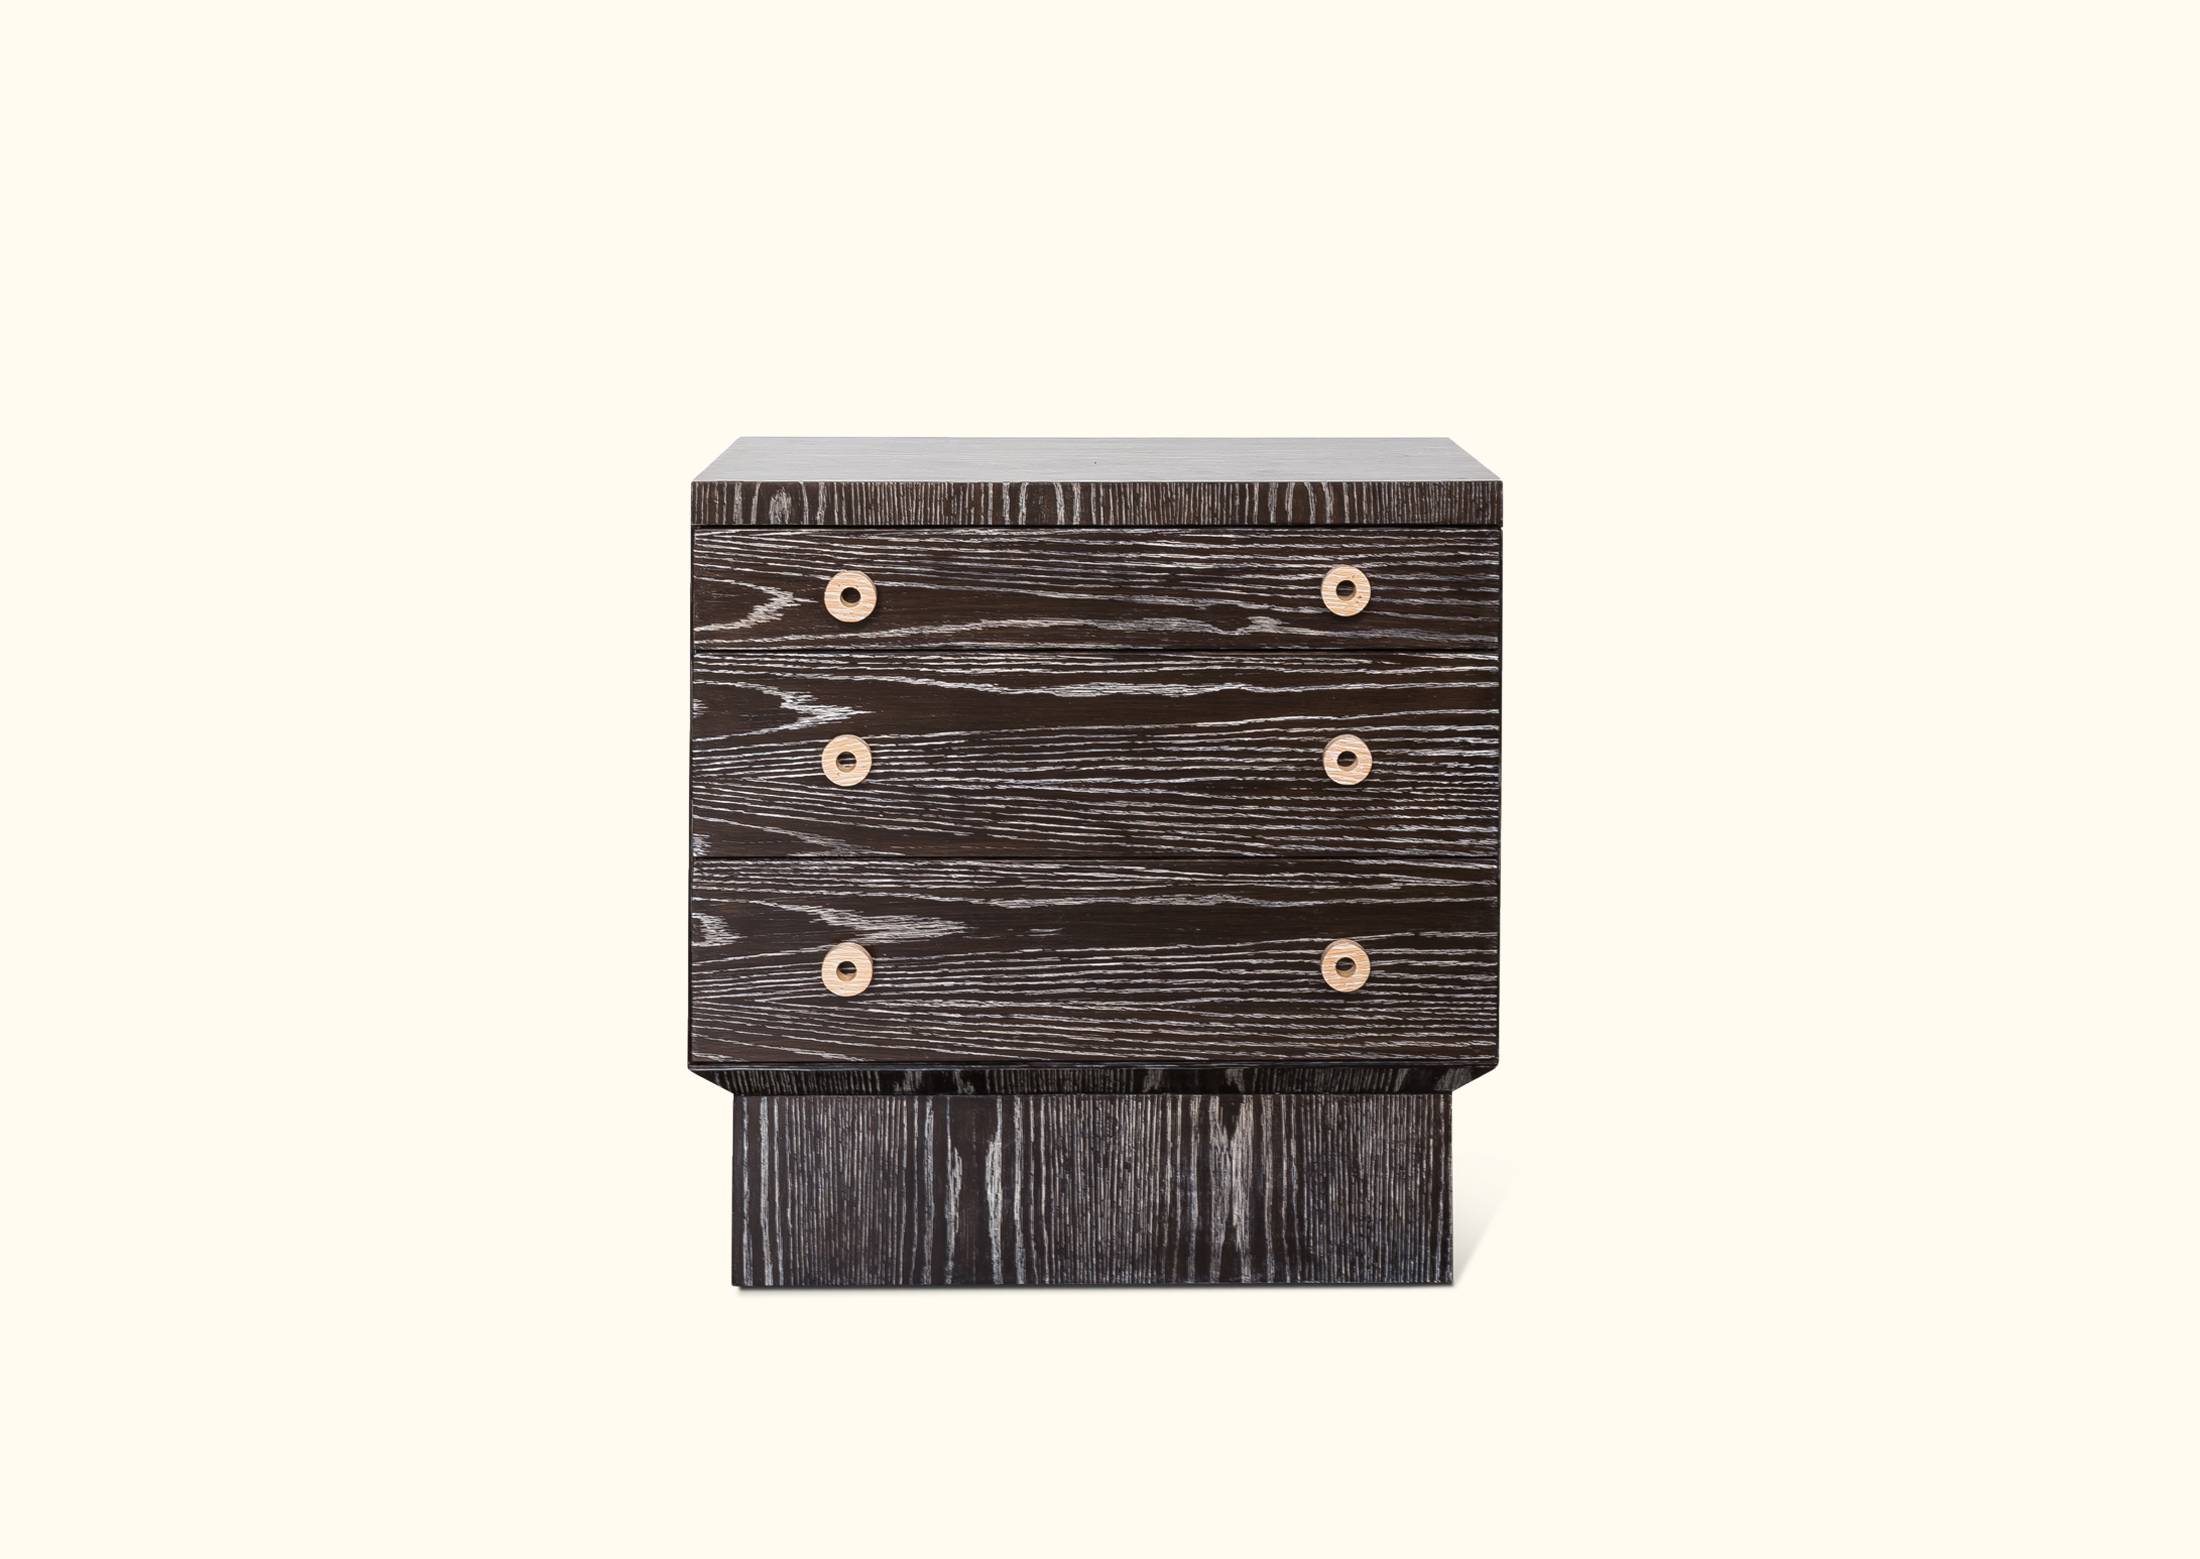 Brian Paquette For Lf Aquidneck Nightstand | Lawson Fenning With Shoreland Sideboards (View 10 of 30)